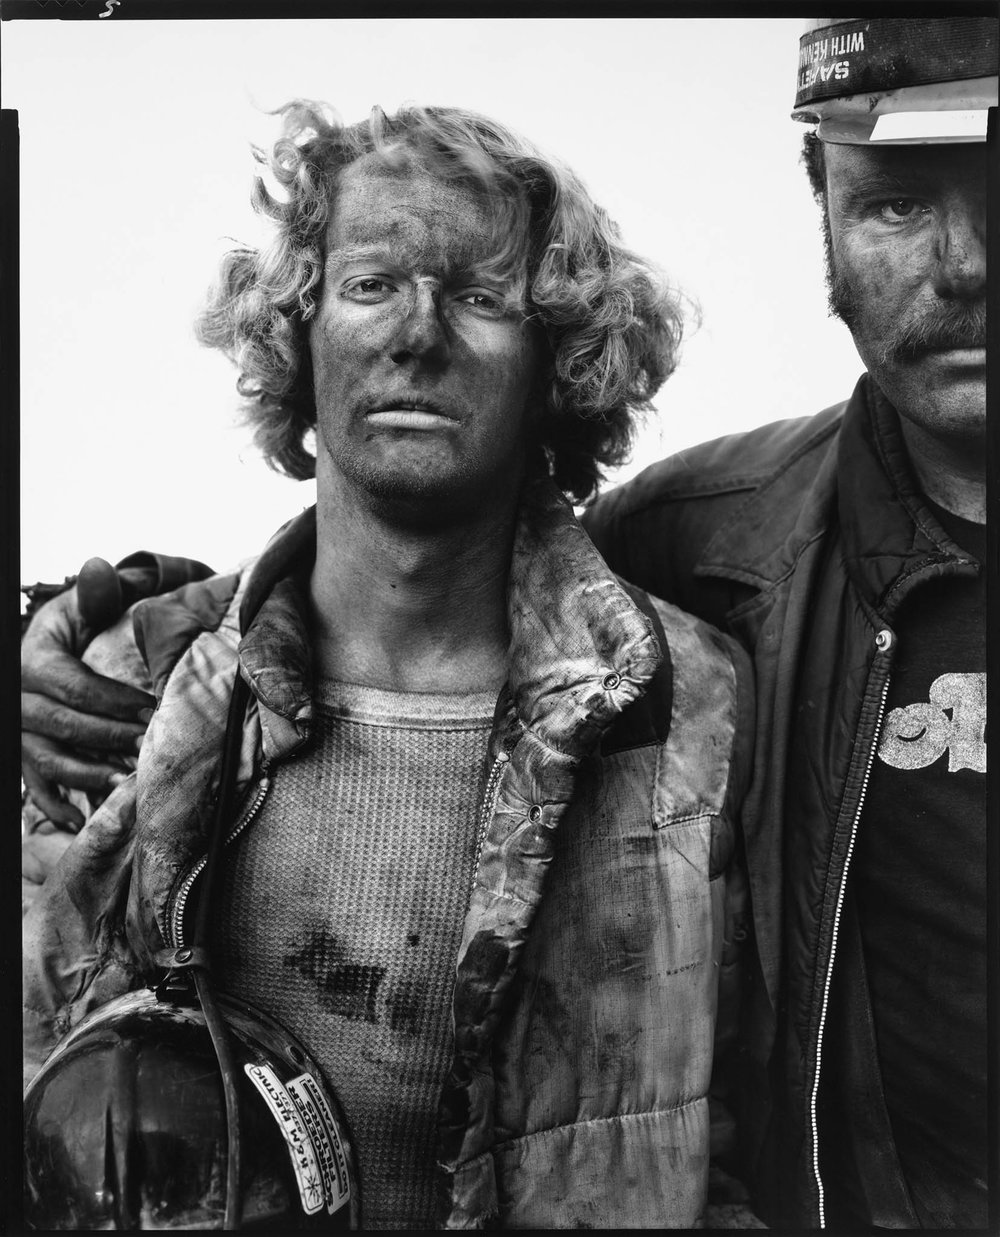 Mike Bencich, Dan Ashberger, coal miners, Somerset, Colorado, August 29, 1980